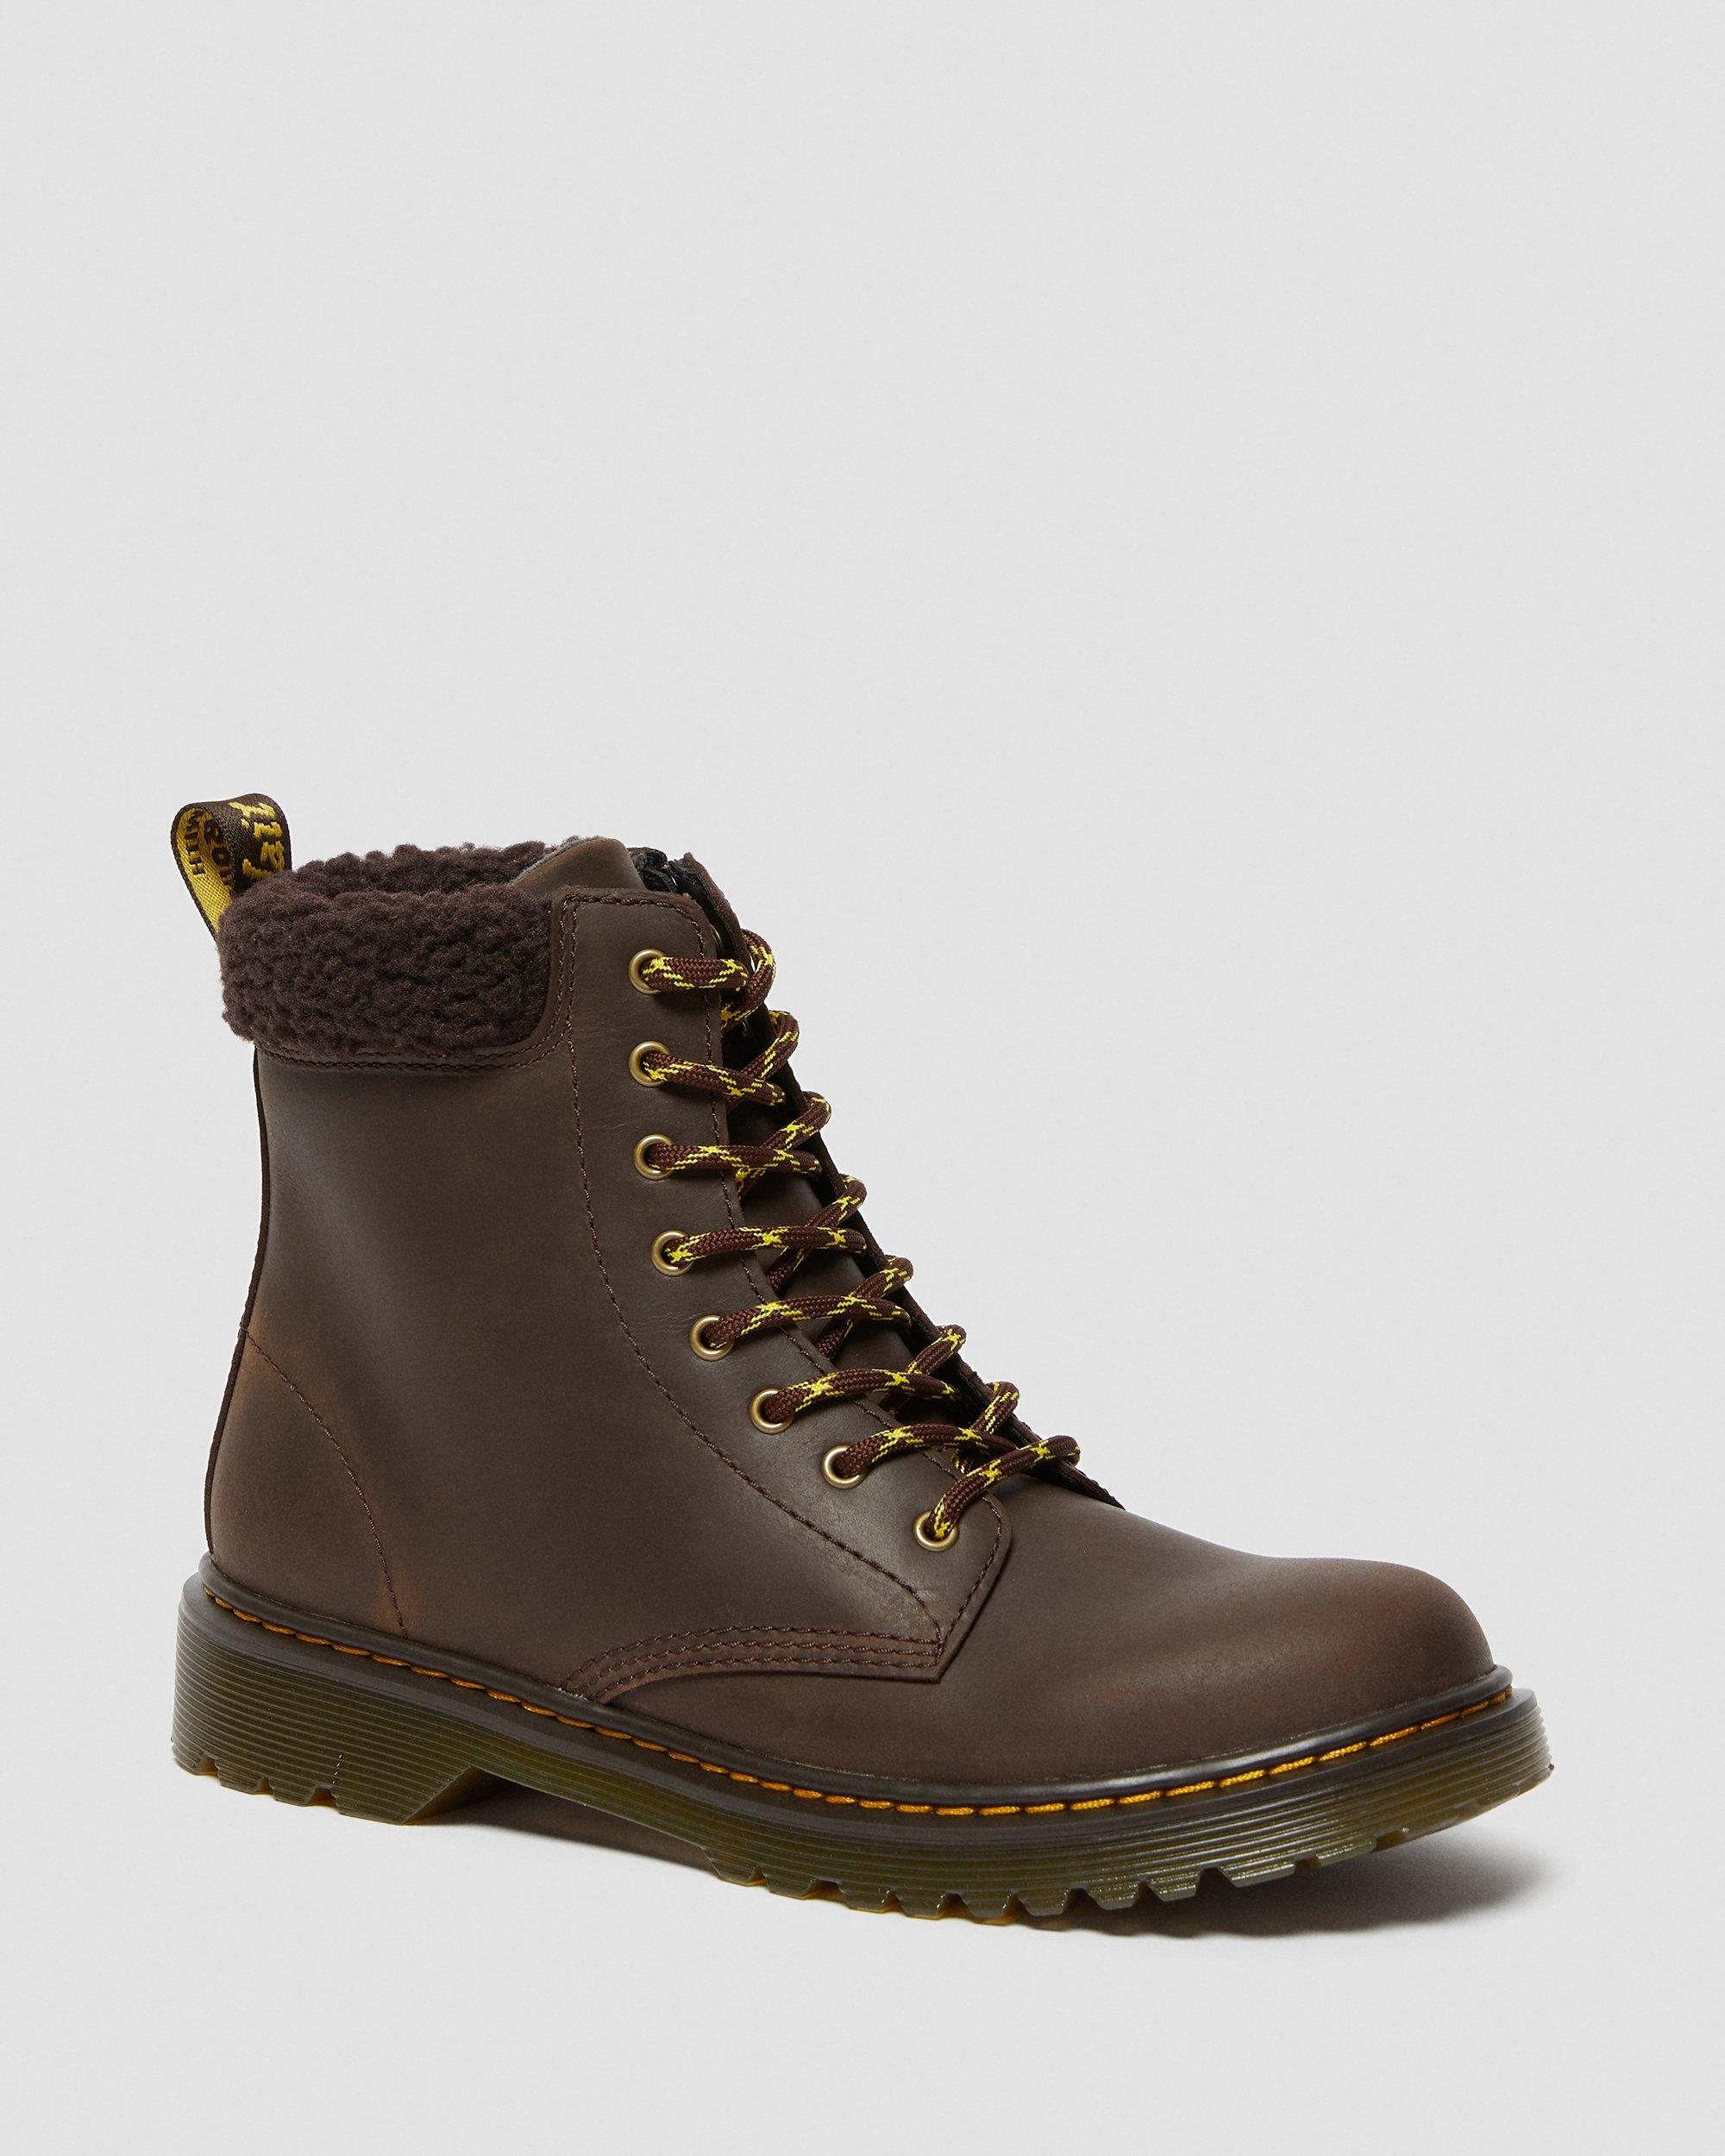 YOUTH 1460 FLEECE LINED LEATHER BOOTS